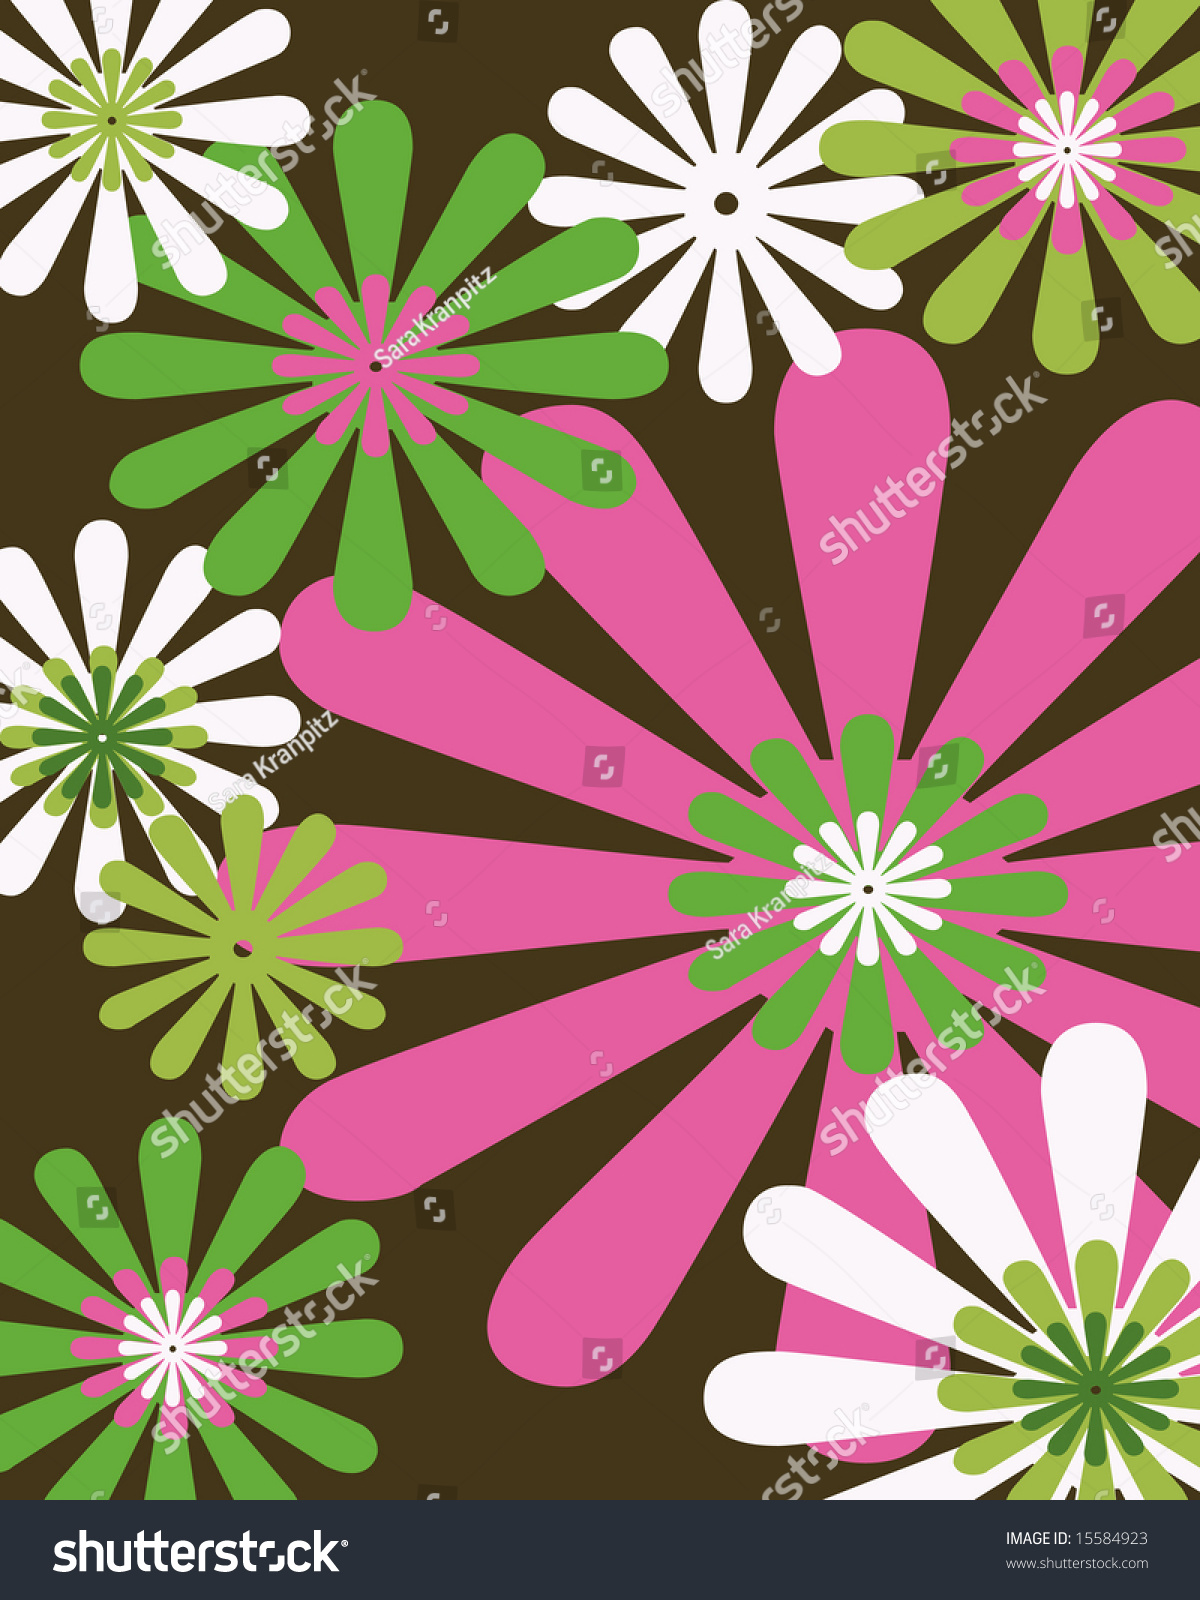 vintage floral brown css html retro brown pink and green floral background stock photo